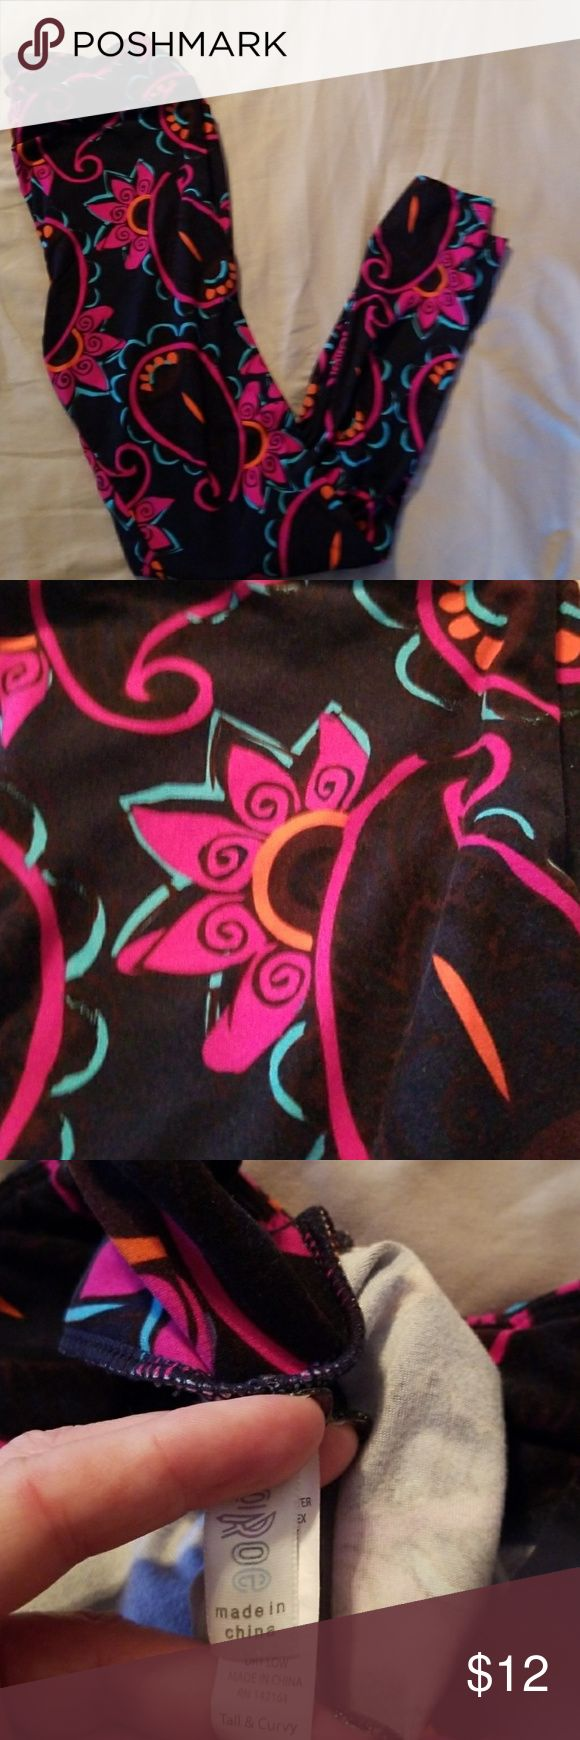 Lularoe TC leggings Navy background with hot pink, real and orange design.  Great condition.  Slight wear in the crotch area as shown.  Smoke free home. LuLaRoe Pants Leggings